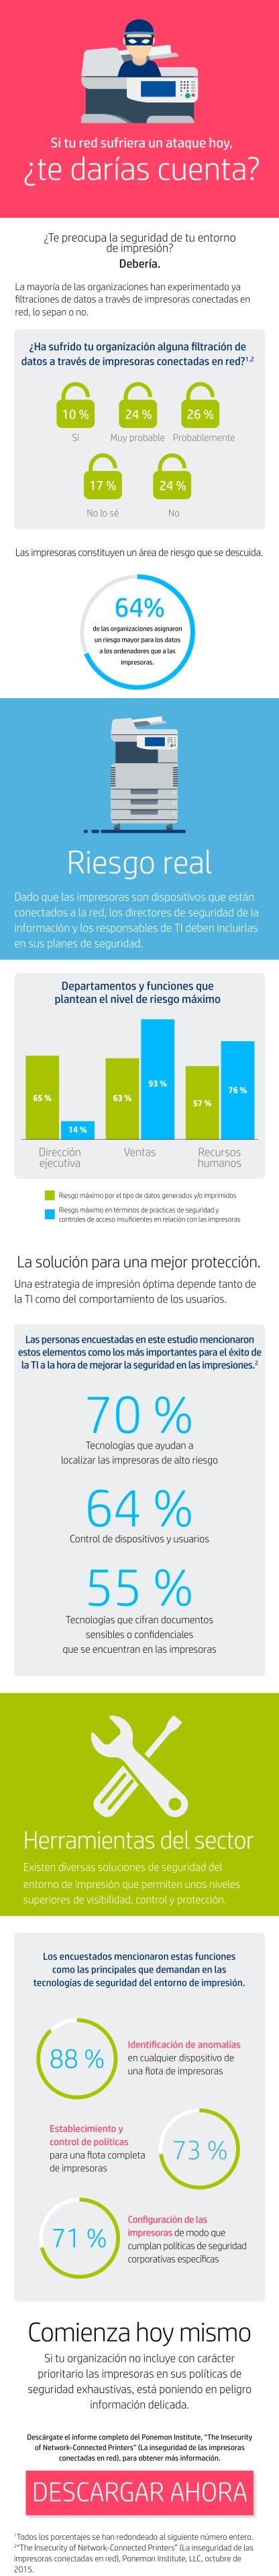 HP10020_Printer-Security_Infographic_11.15.jpg